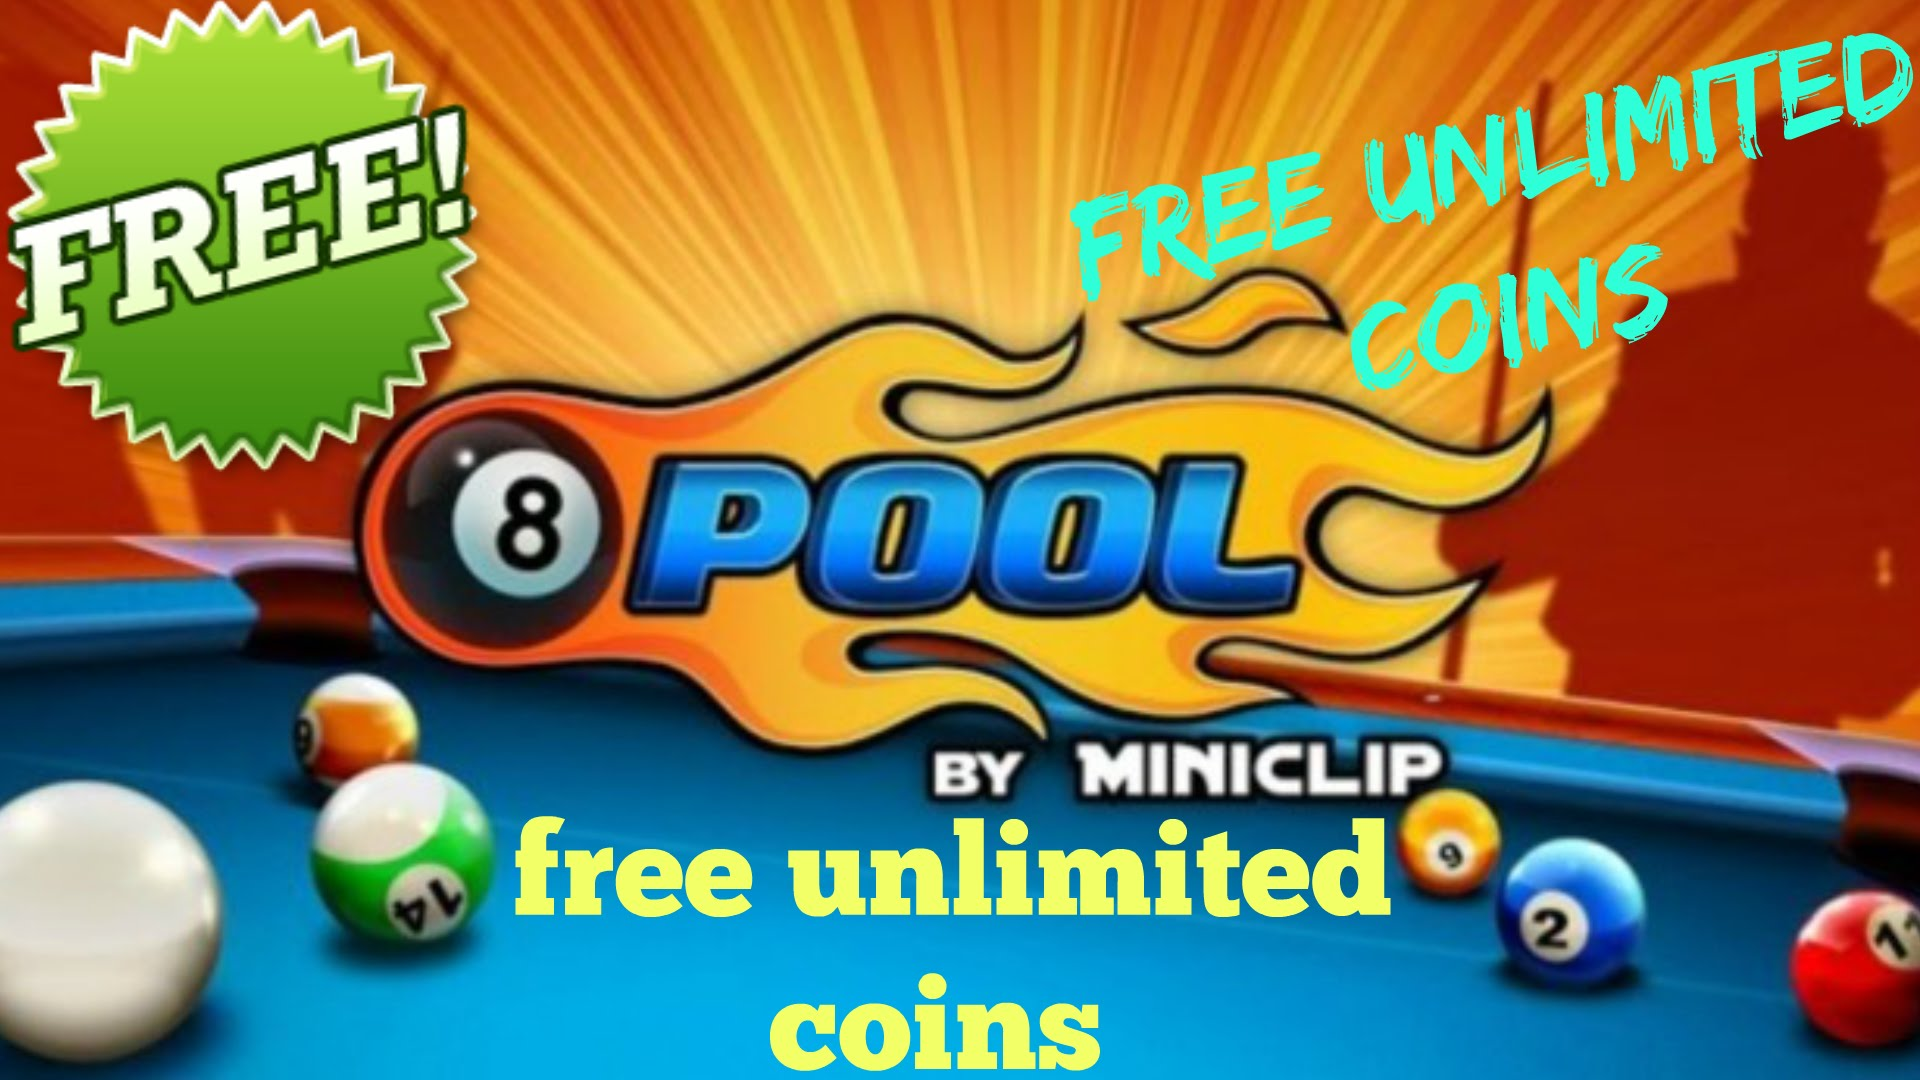 【999FREE.COM 8 BALL POOL】 Cash and Coins FOR ANDROID IOS PC PLAYSTATION   100% WORKING METHOD   GET UNLIMITED RESOURCES NOW